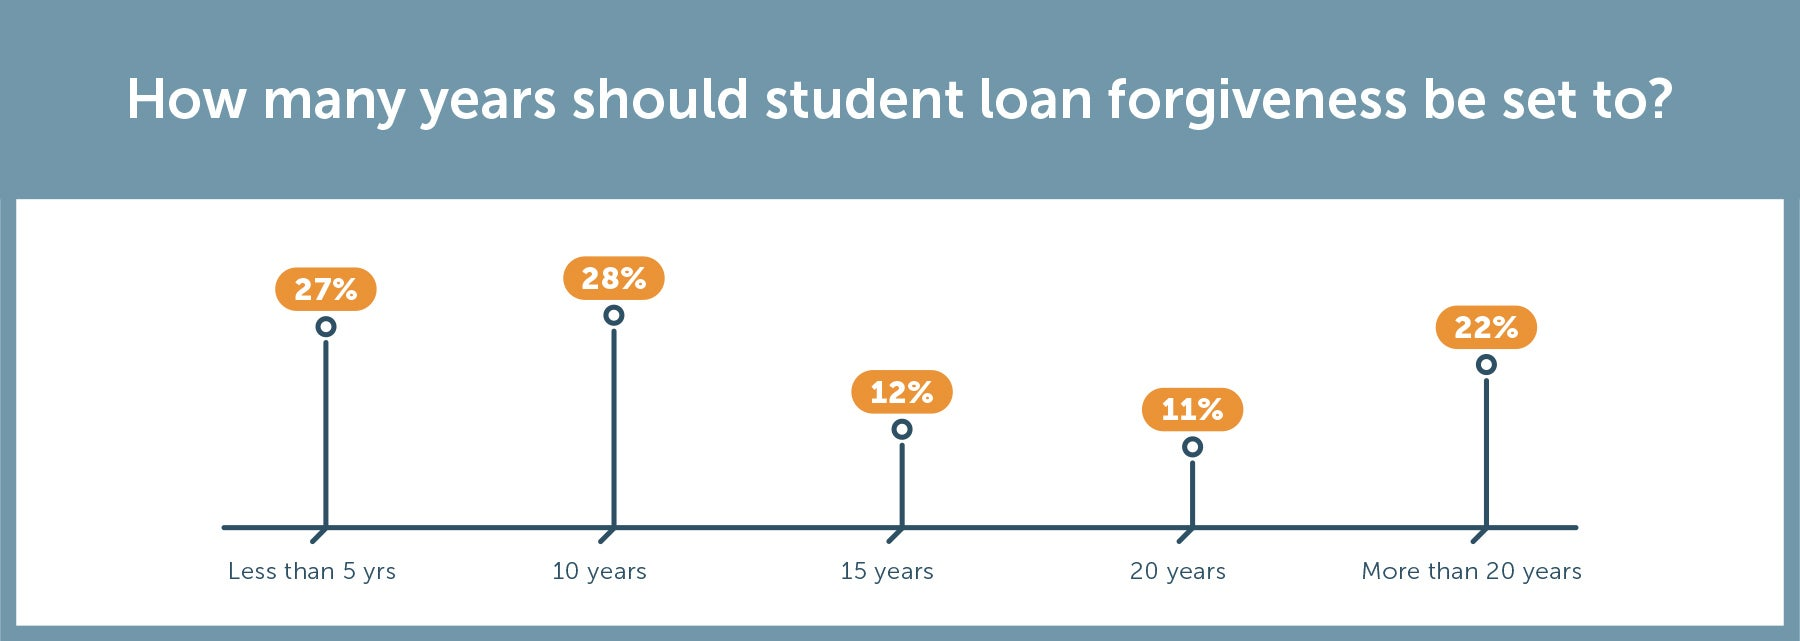 Americans opinions of student loan forgiveness